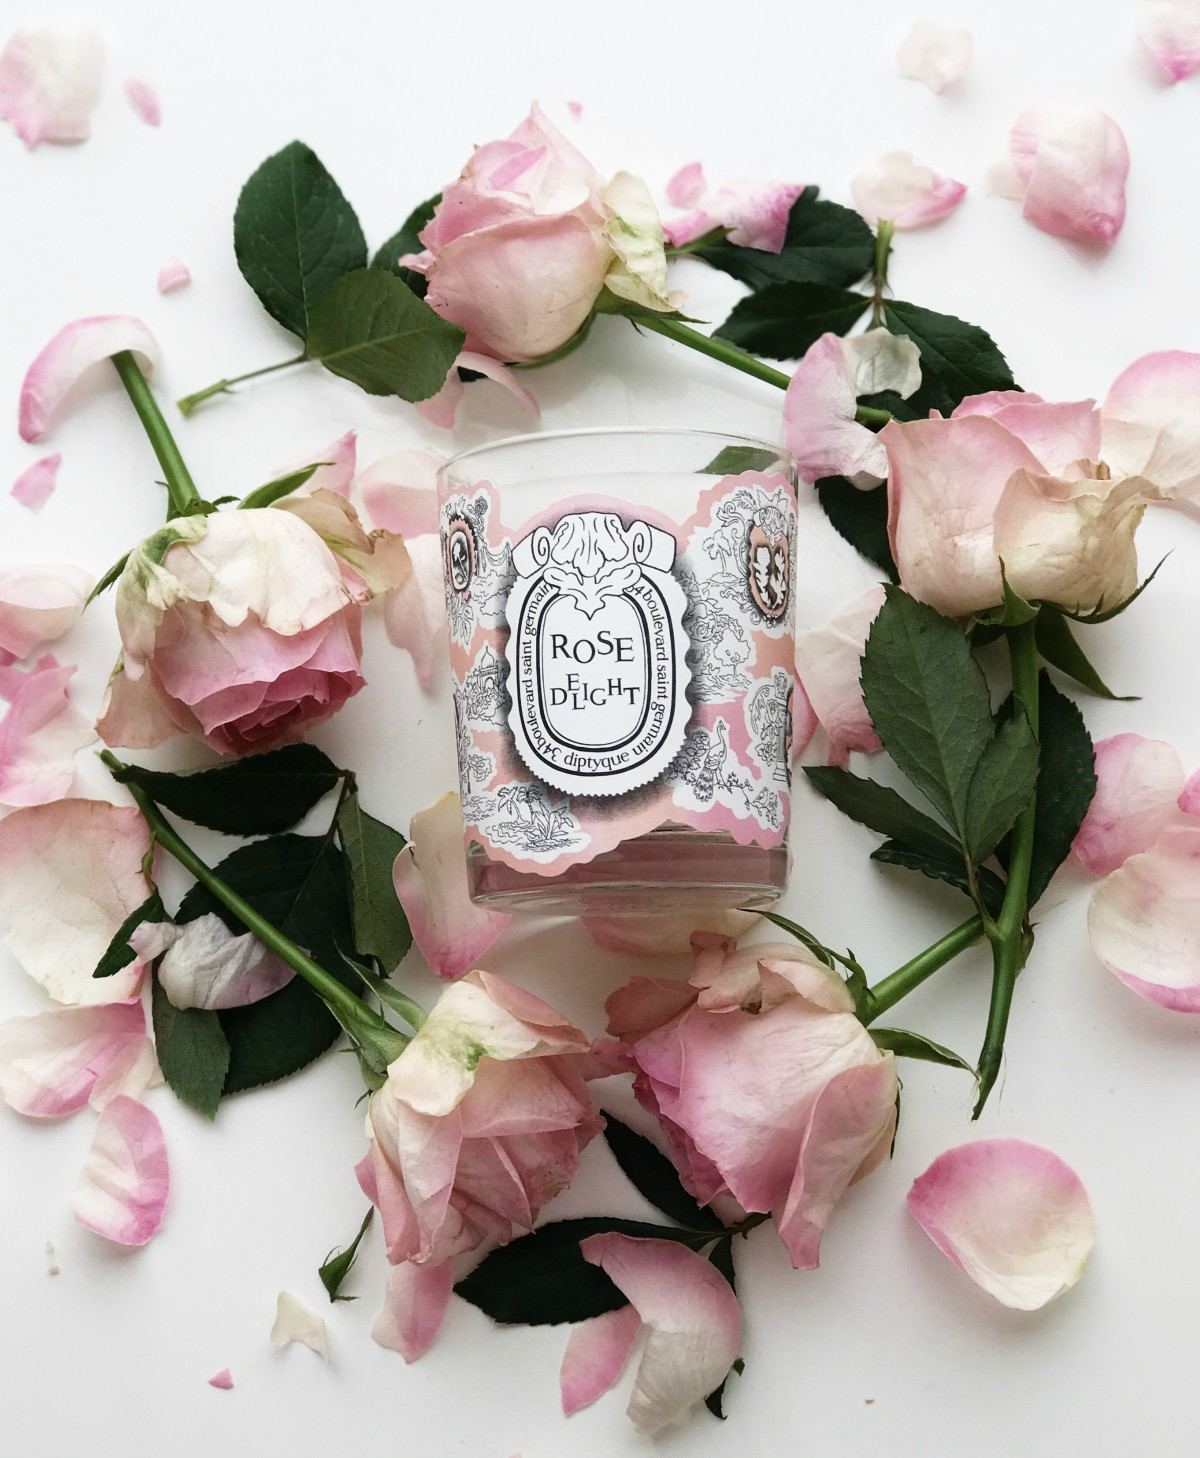 Diptyque Rose Delight Candle Valentine's Day 2018 Review